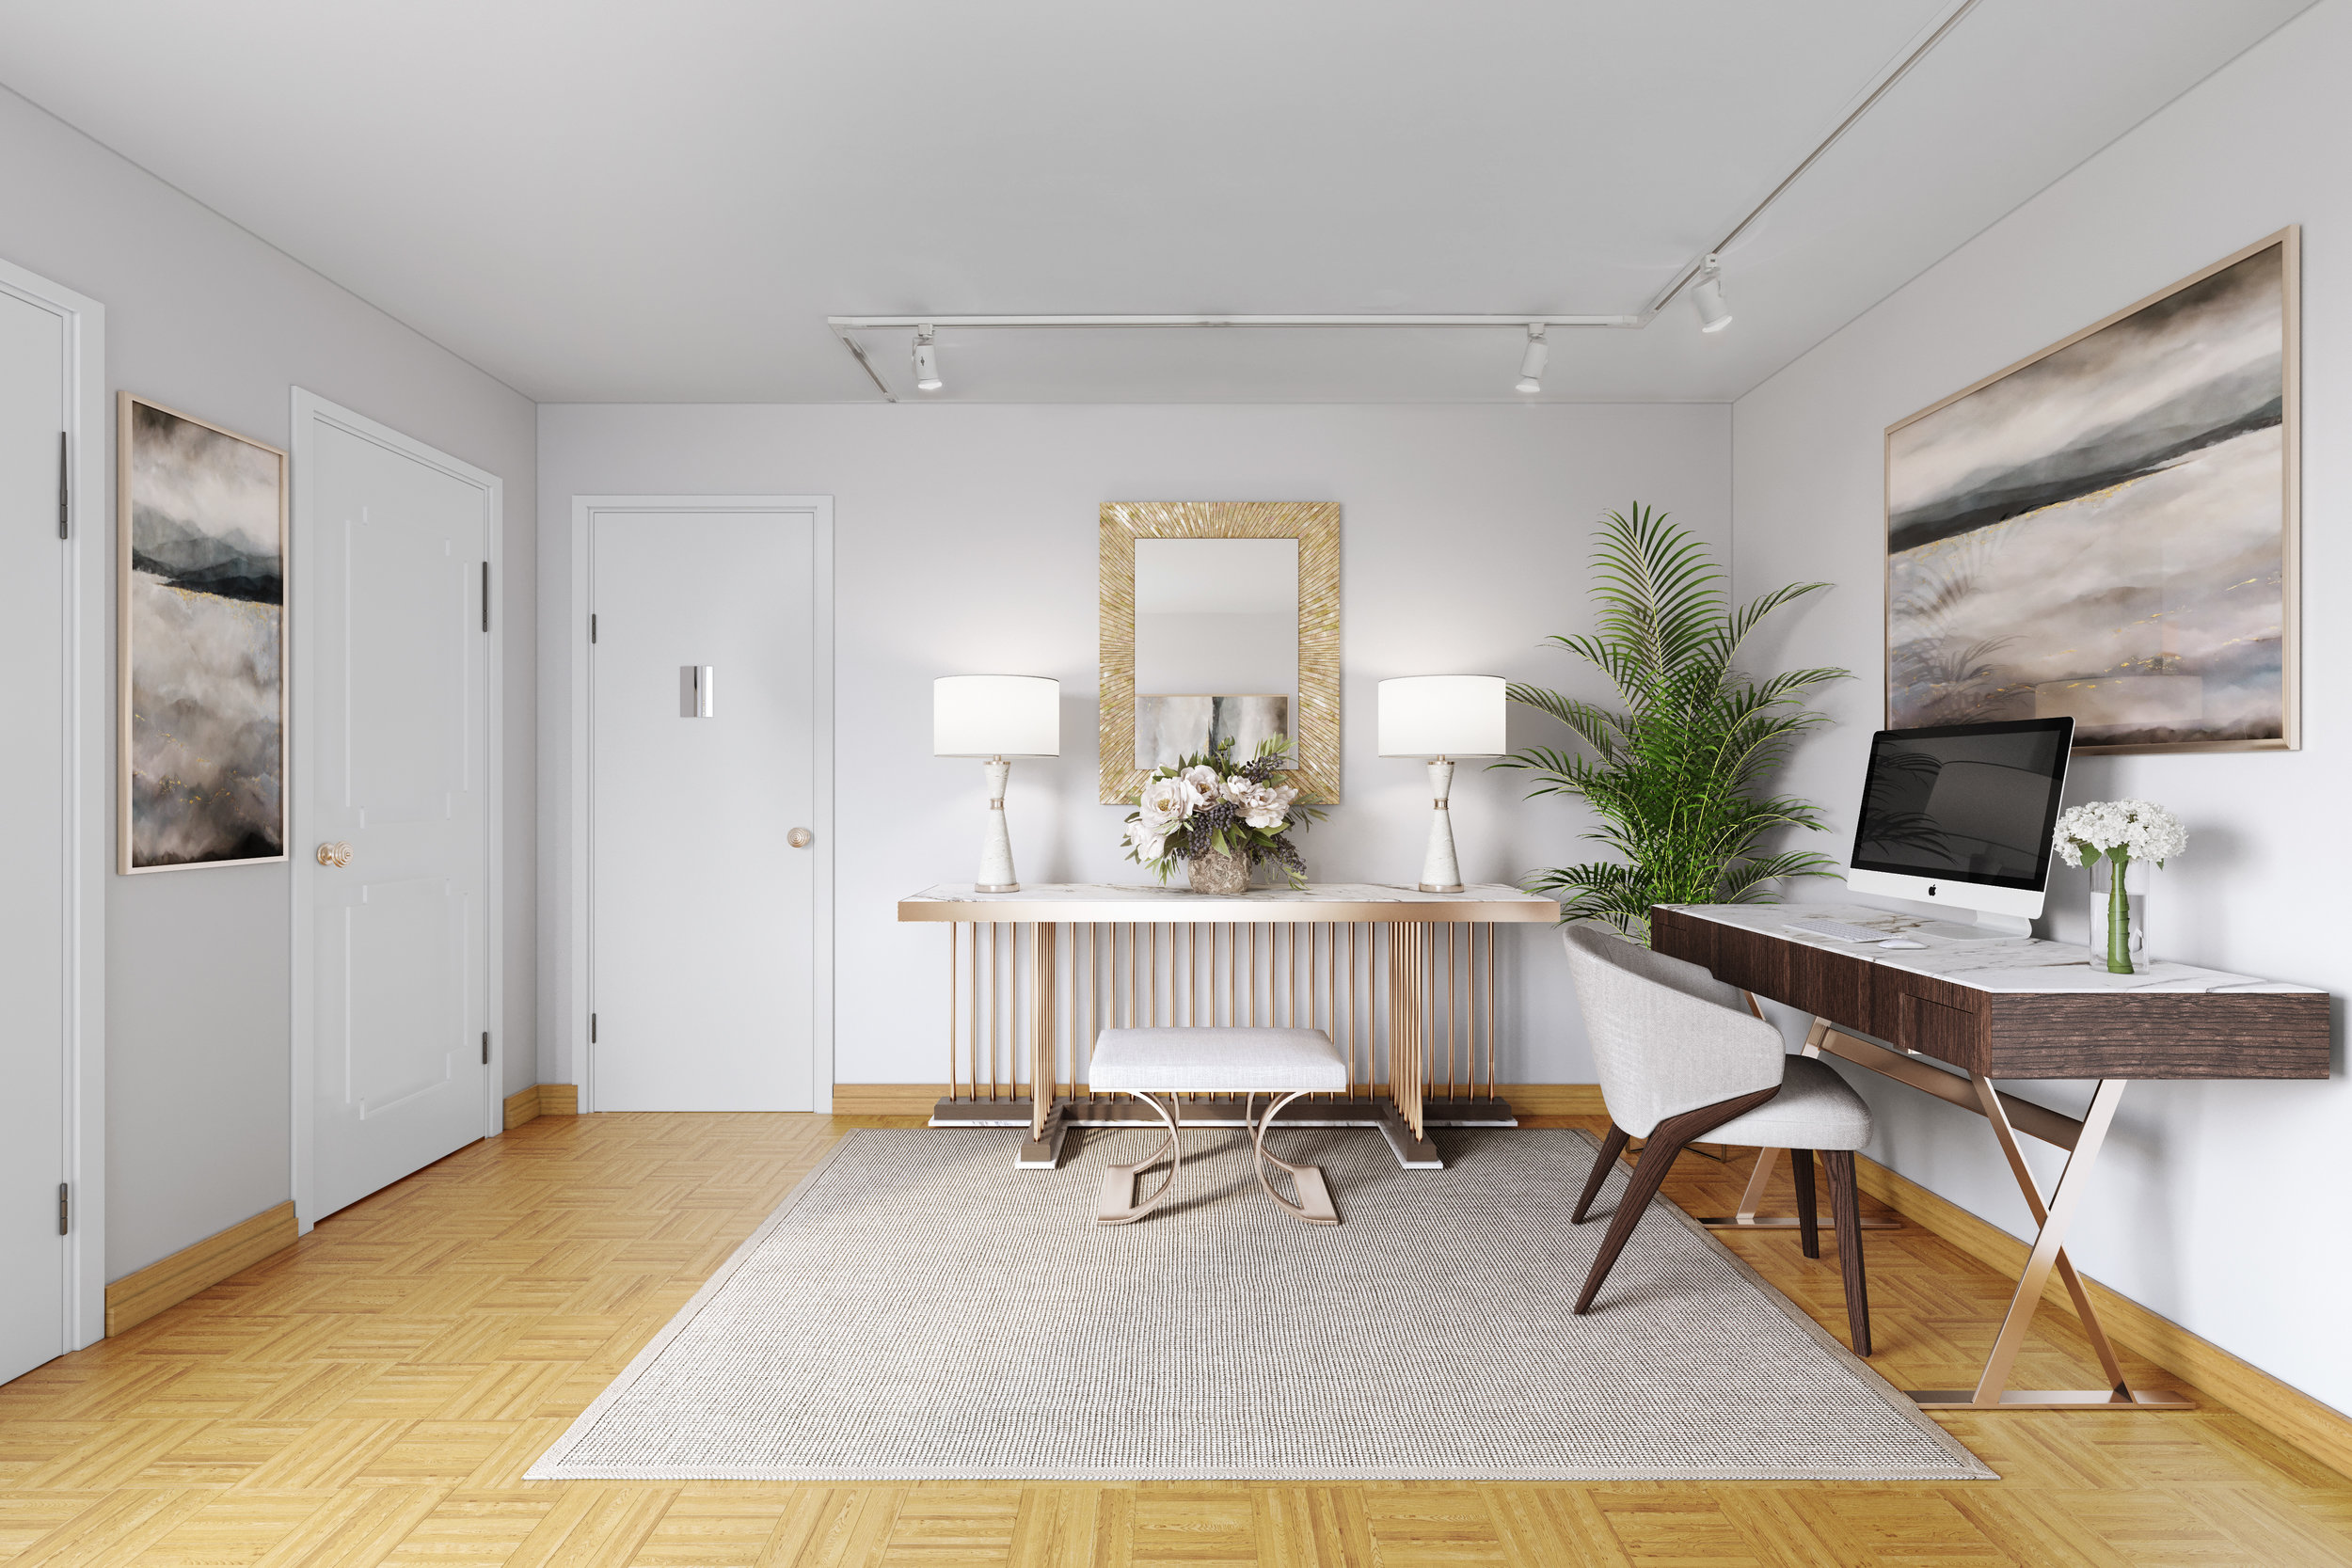 Andrew-70 East 10th St-Entry-staged-corrected-vk.jpg